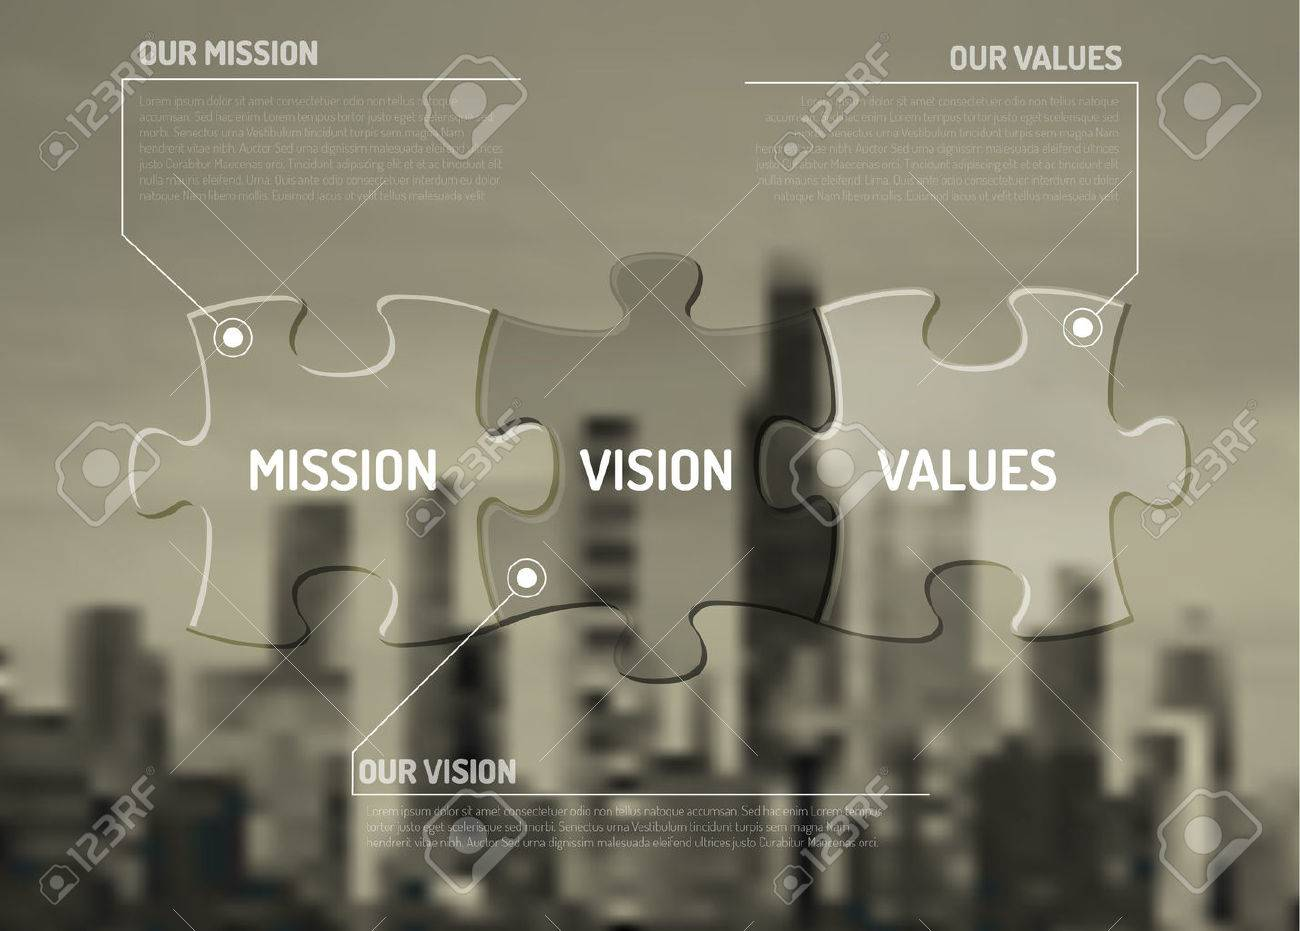 Mission, vision and values diagram schema made from puzzle pieces on the city background - 55424172